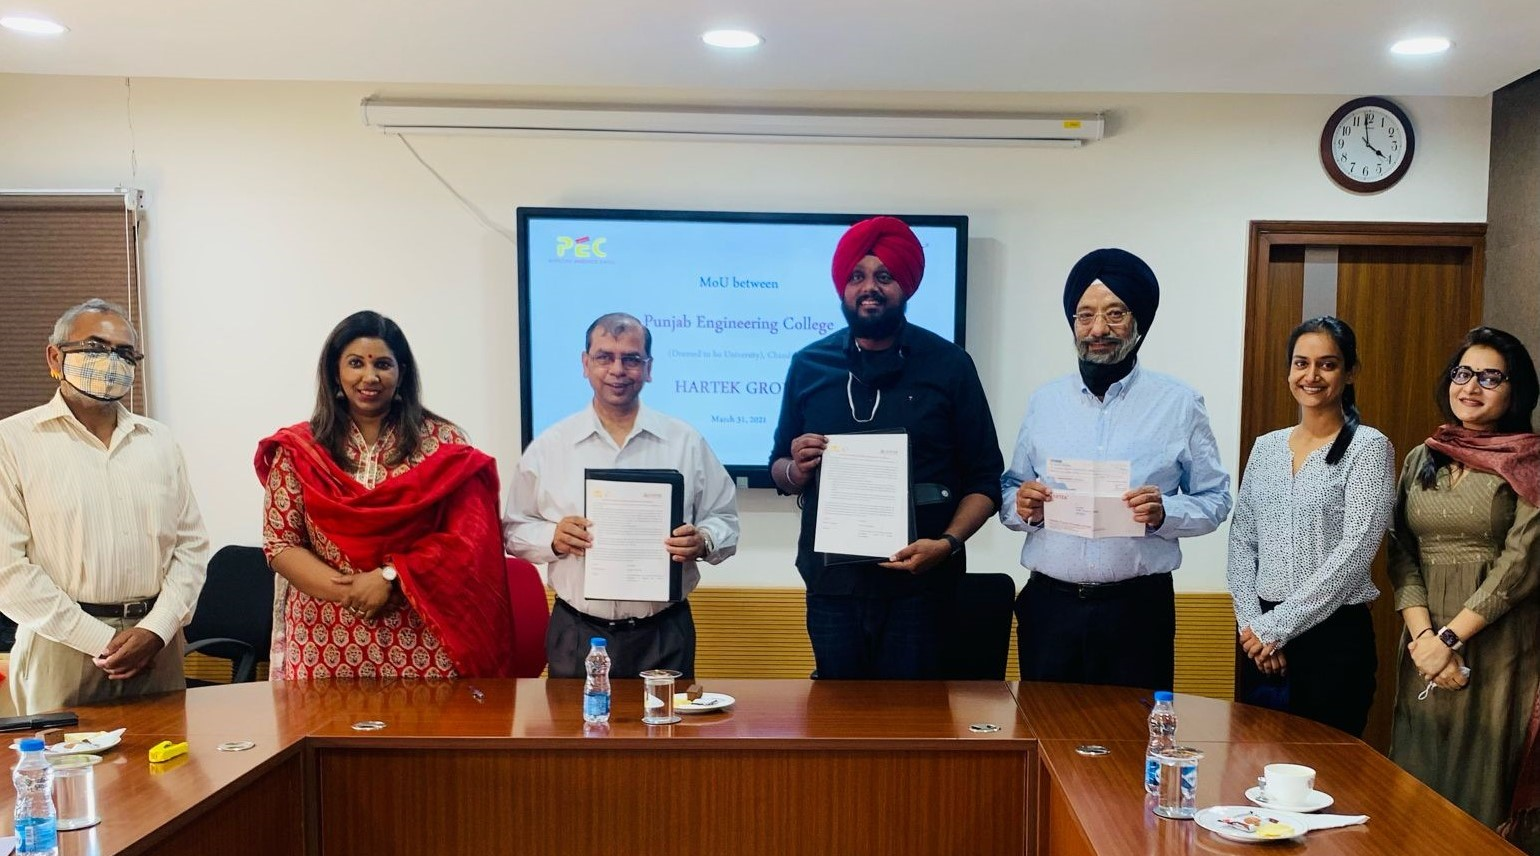 Hartek Group launches Scholarship Programme at Punjab Engineering College